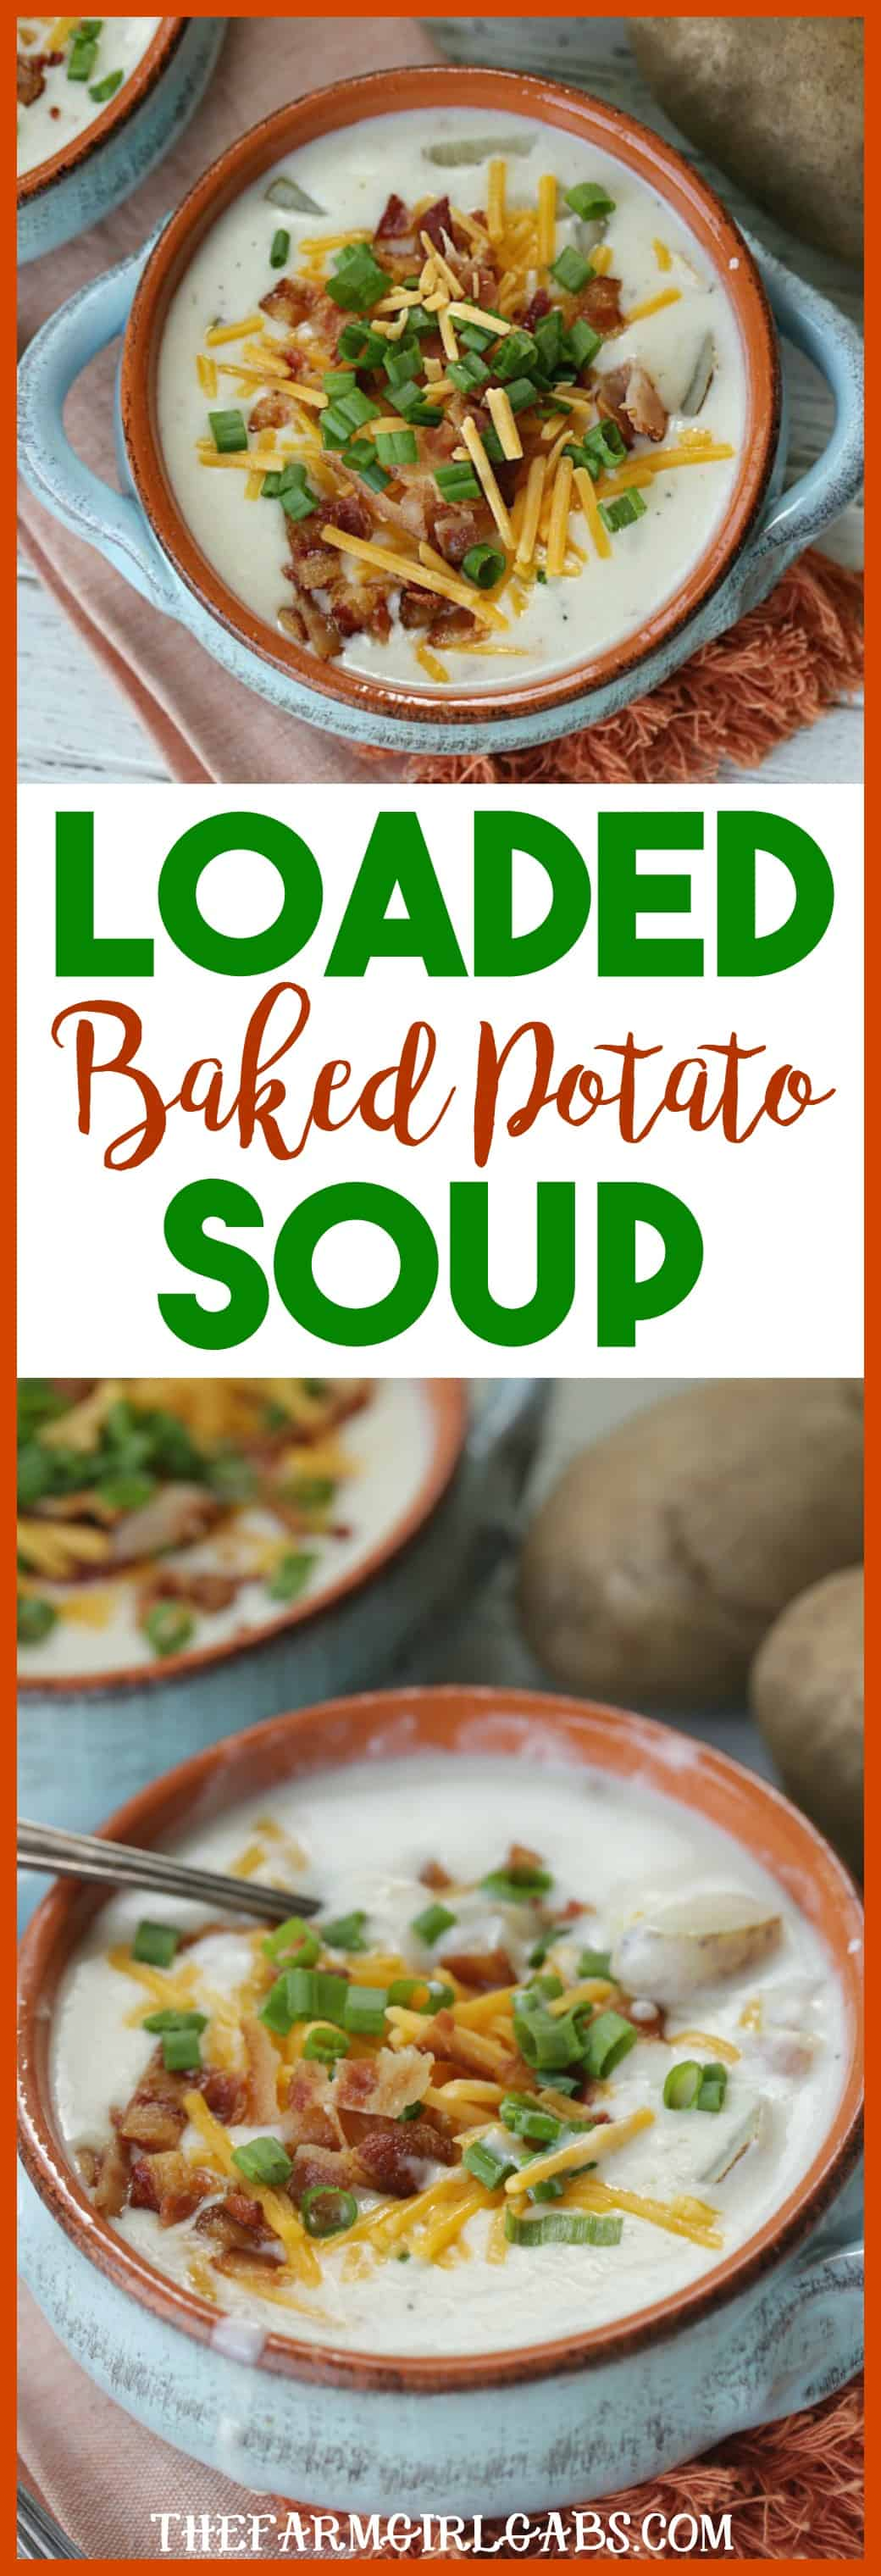 You won't be able to resist the soul-soothing comfort of this delicious Loaded Baked Potato Soup recipe. #Soup #BakedPotatoSoup #Recipe #ComfortFood #LoadedBakedPotatoSoup #SoupRecipe